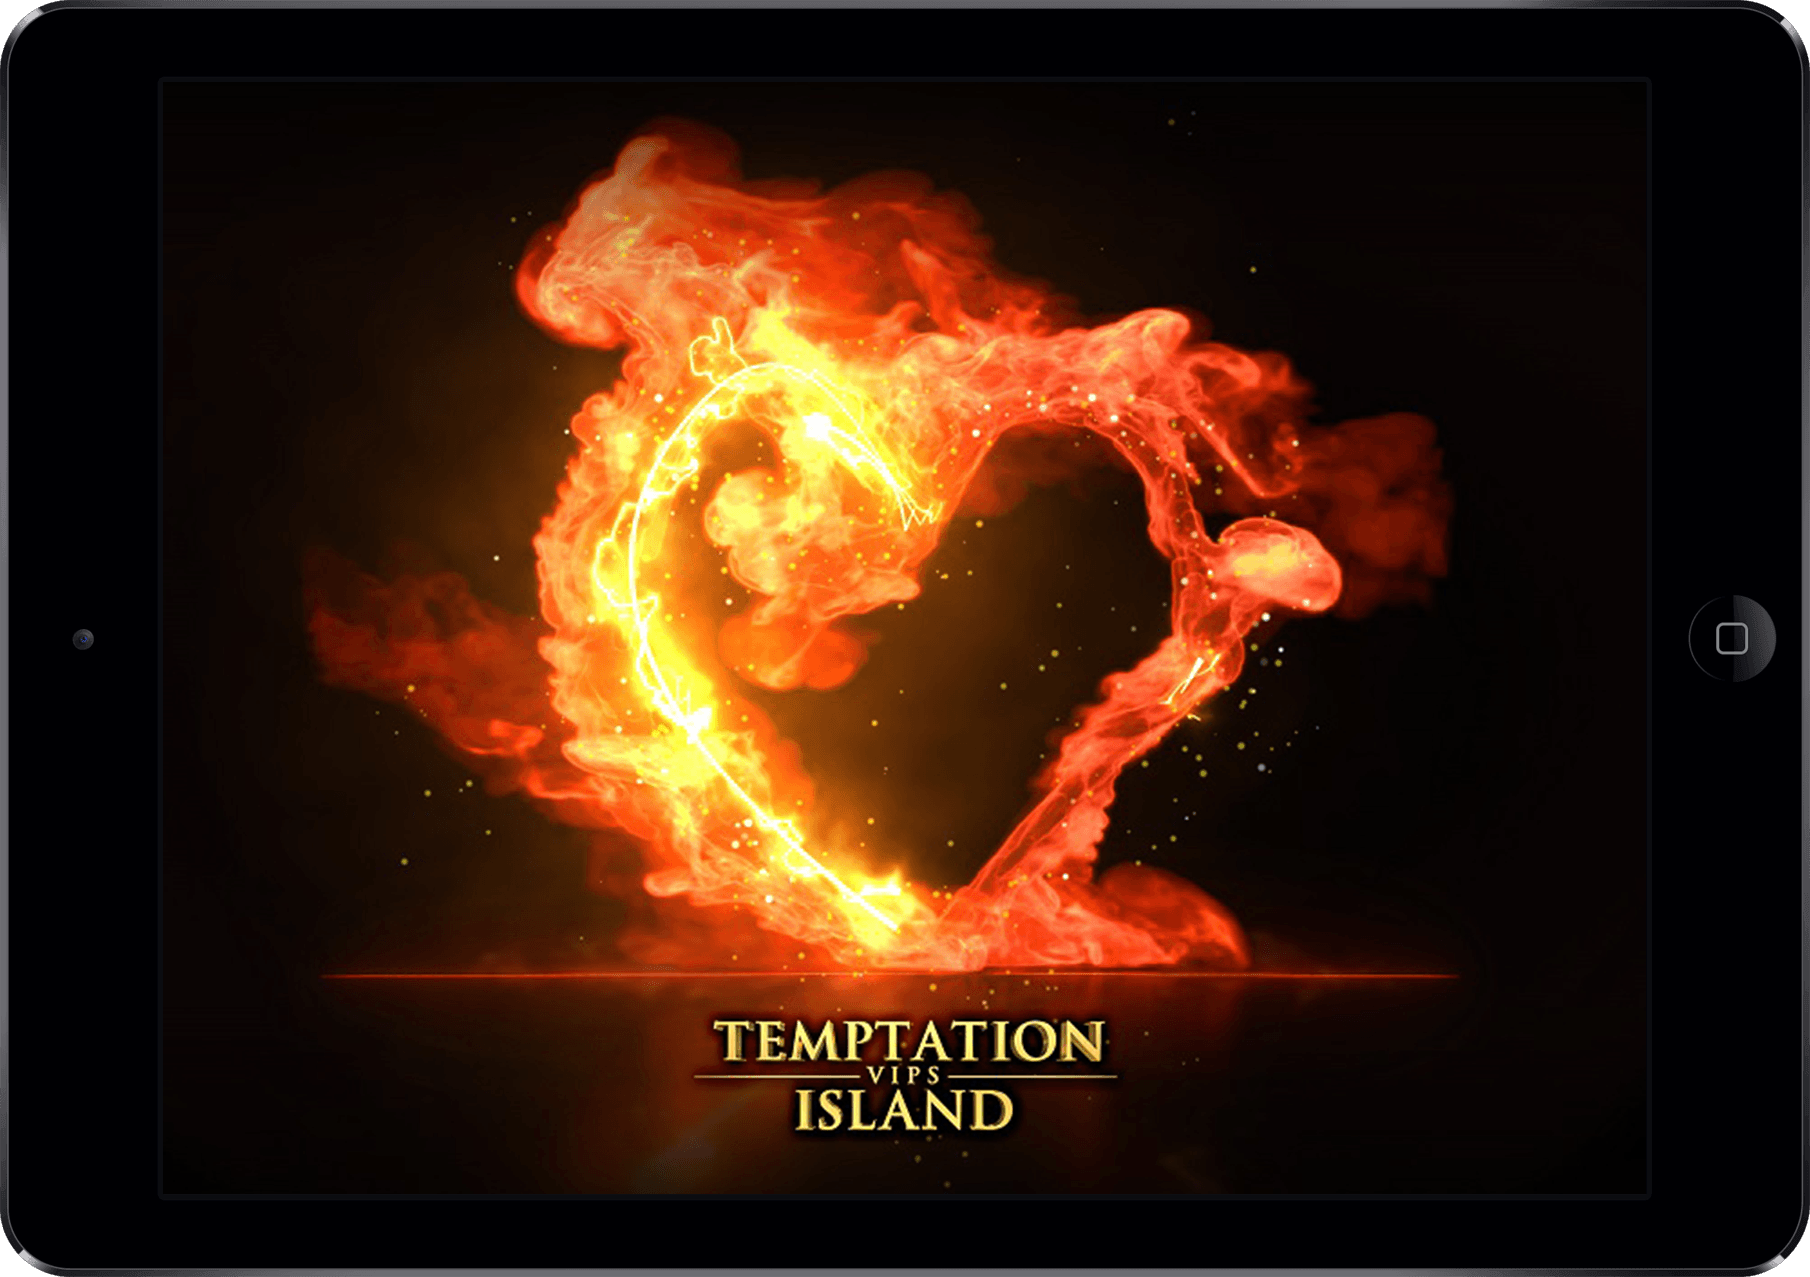 tempation island vip applicatie